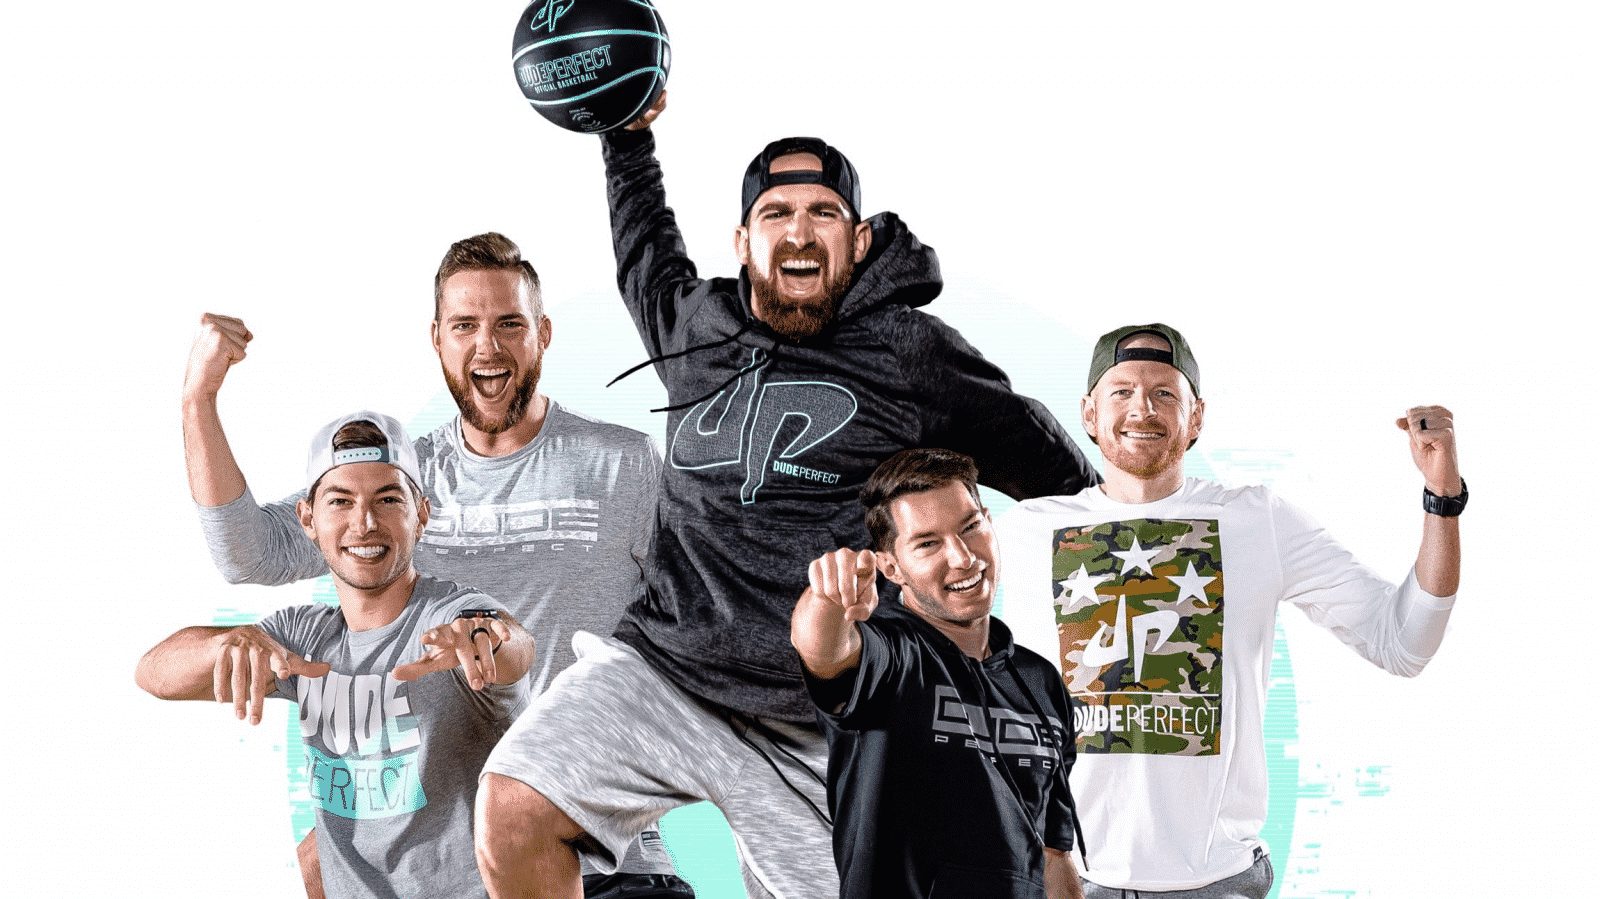 What to Know About Dude Perfect